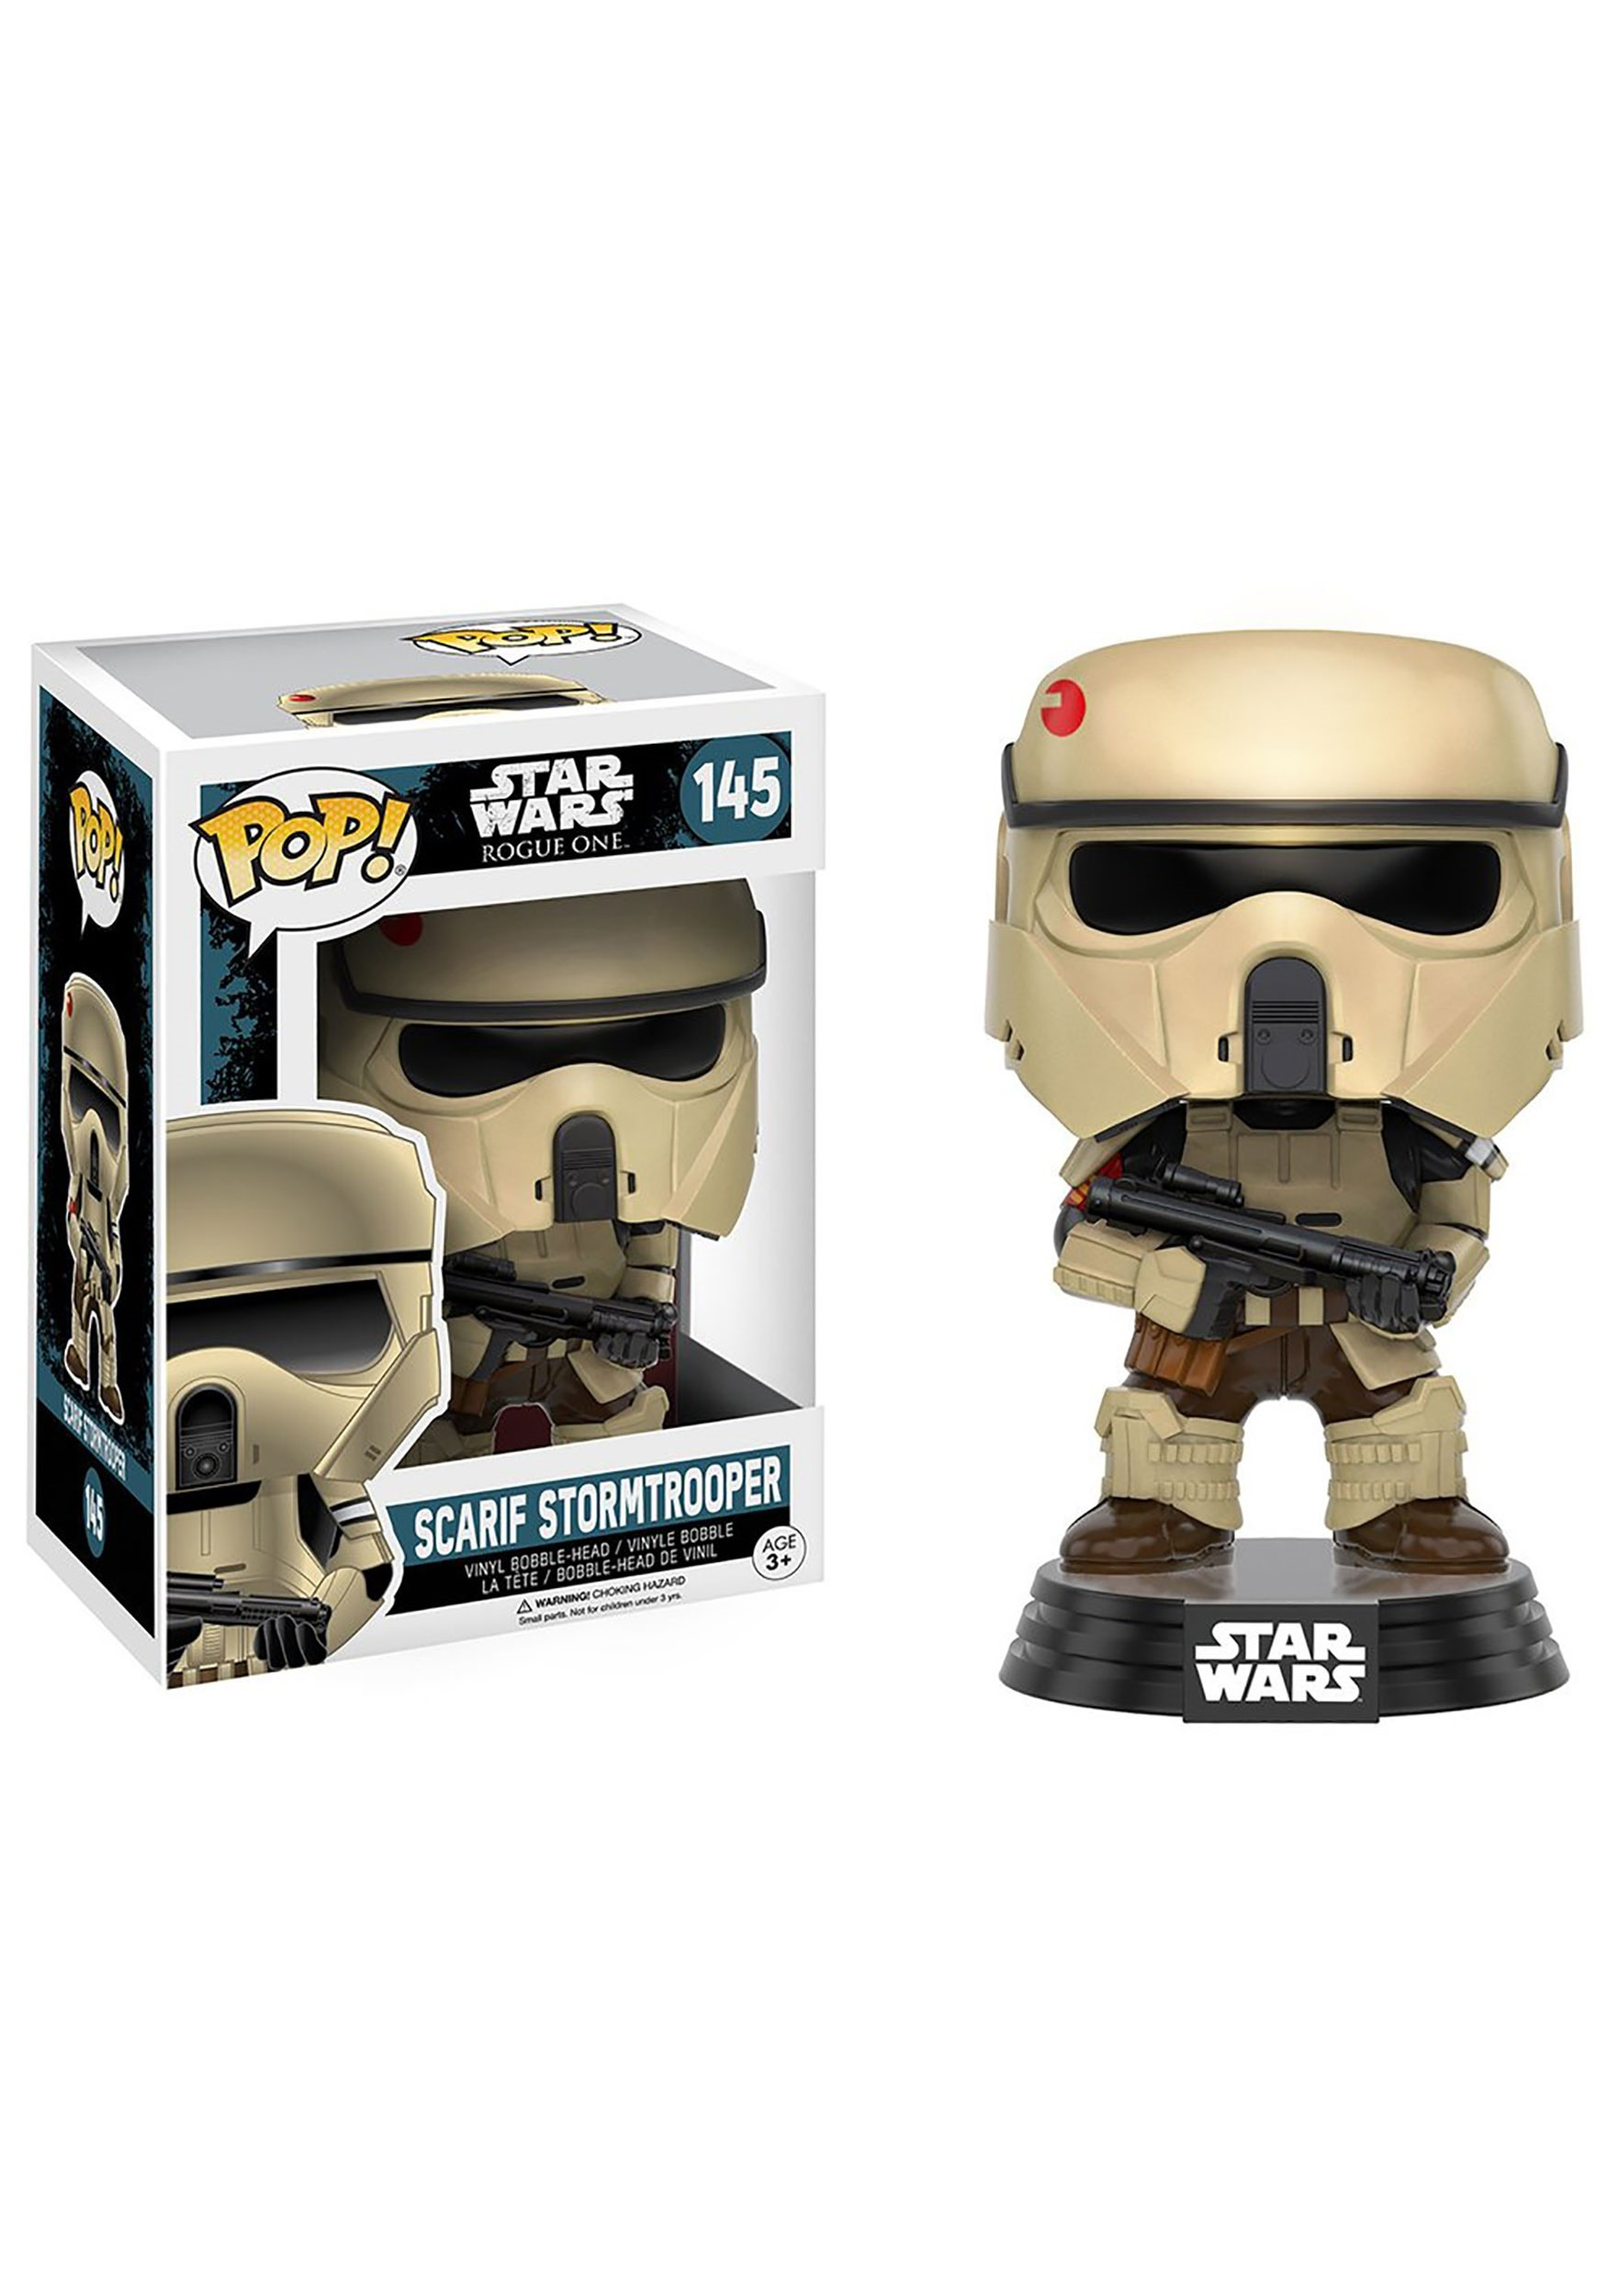 Star Wars Rogue One Scarif Stormtrooper POP Bobblehead Figure FN10460